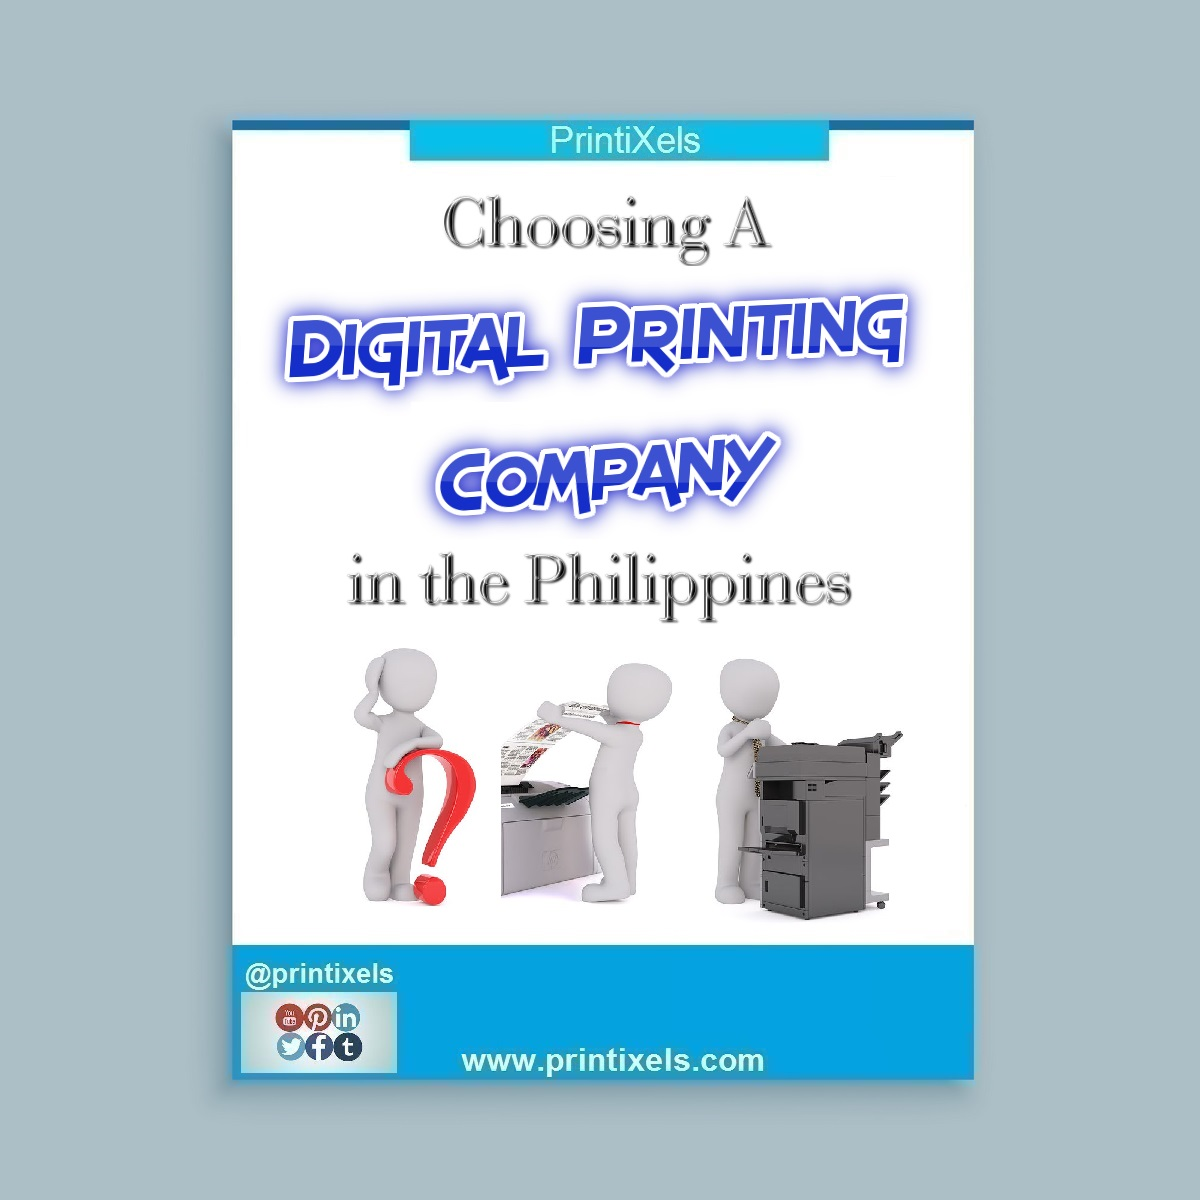 Choosing A Digital Printing Company in the Philippines